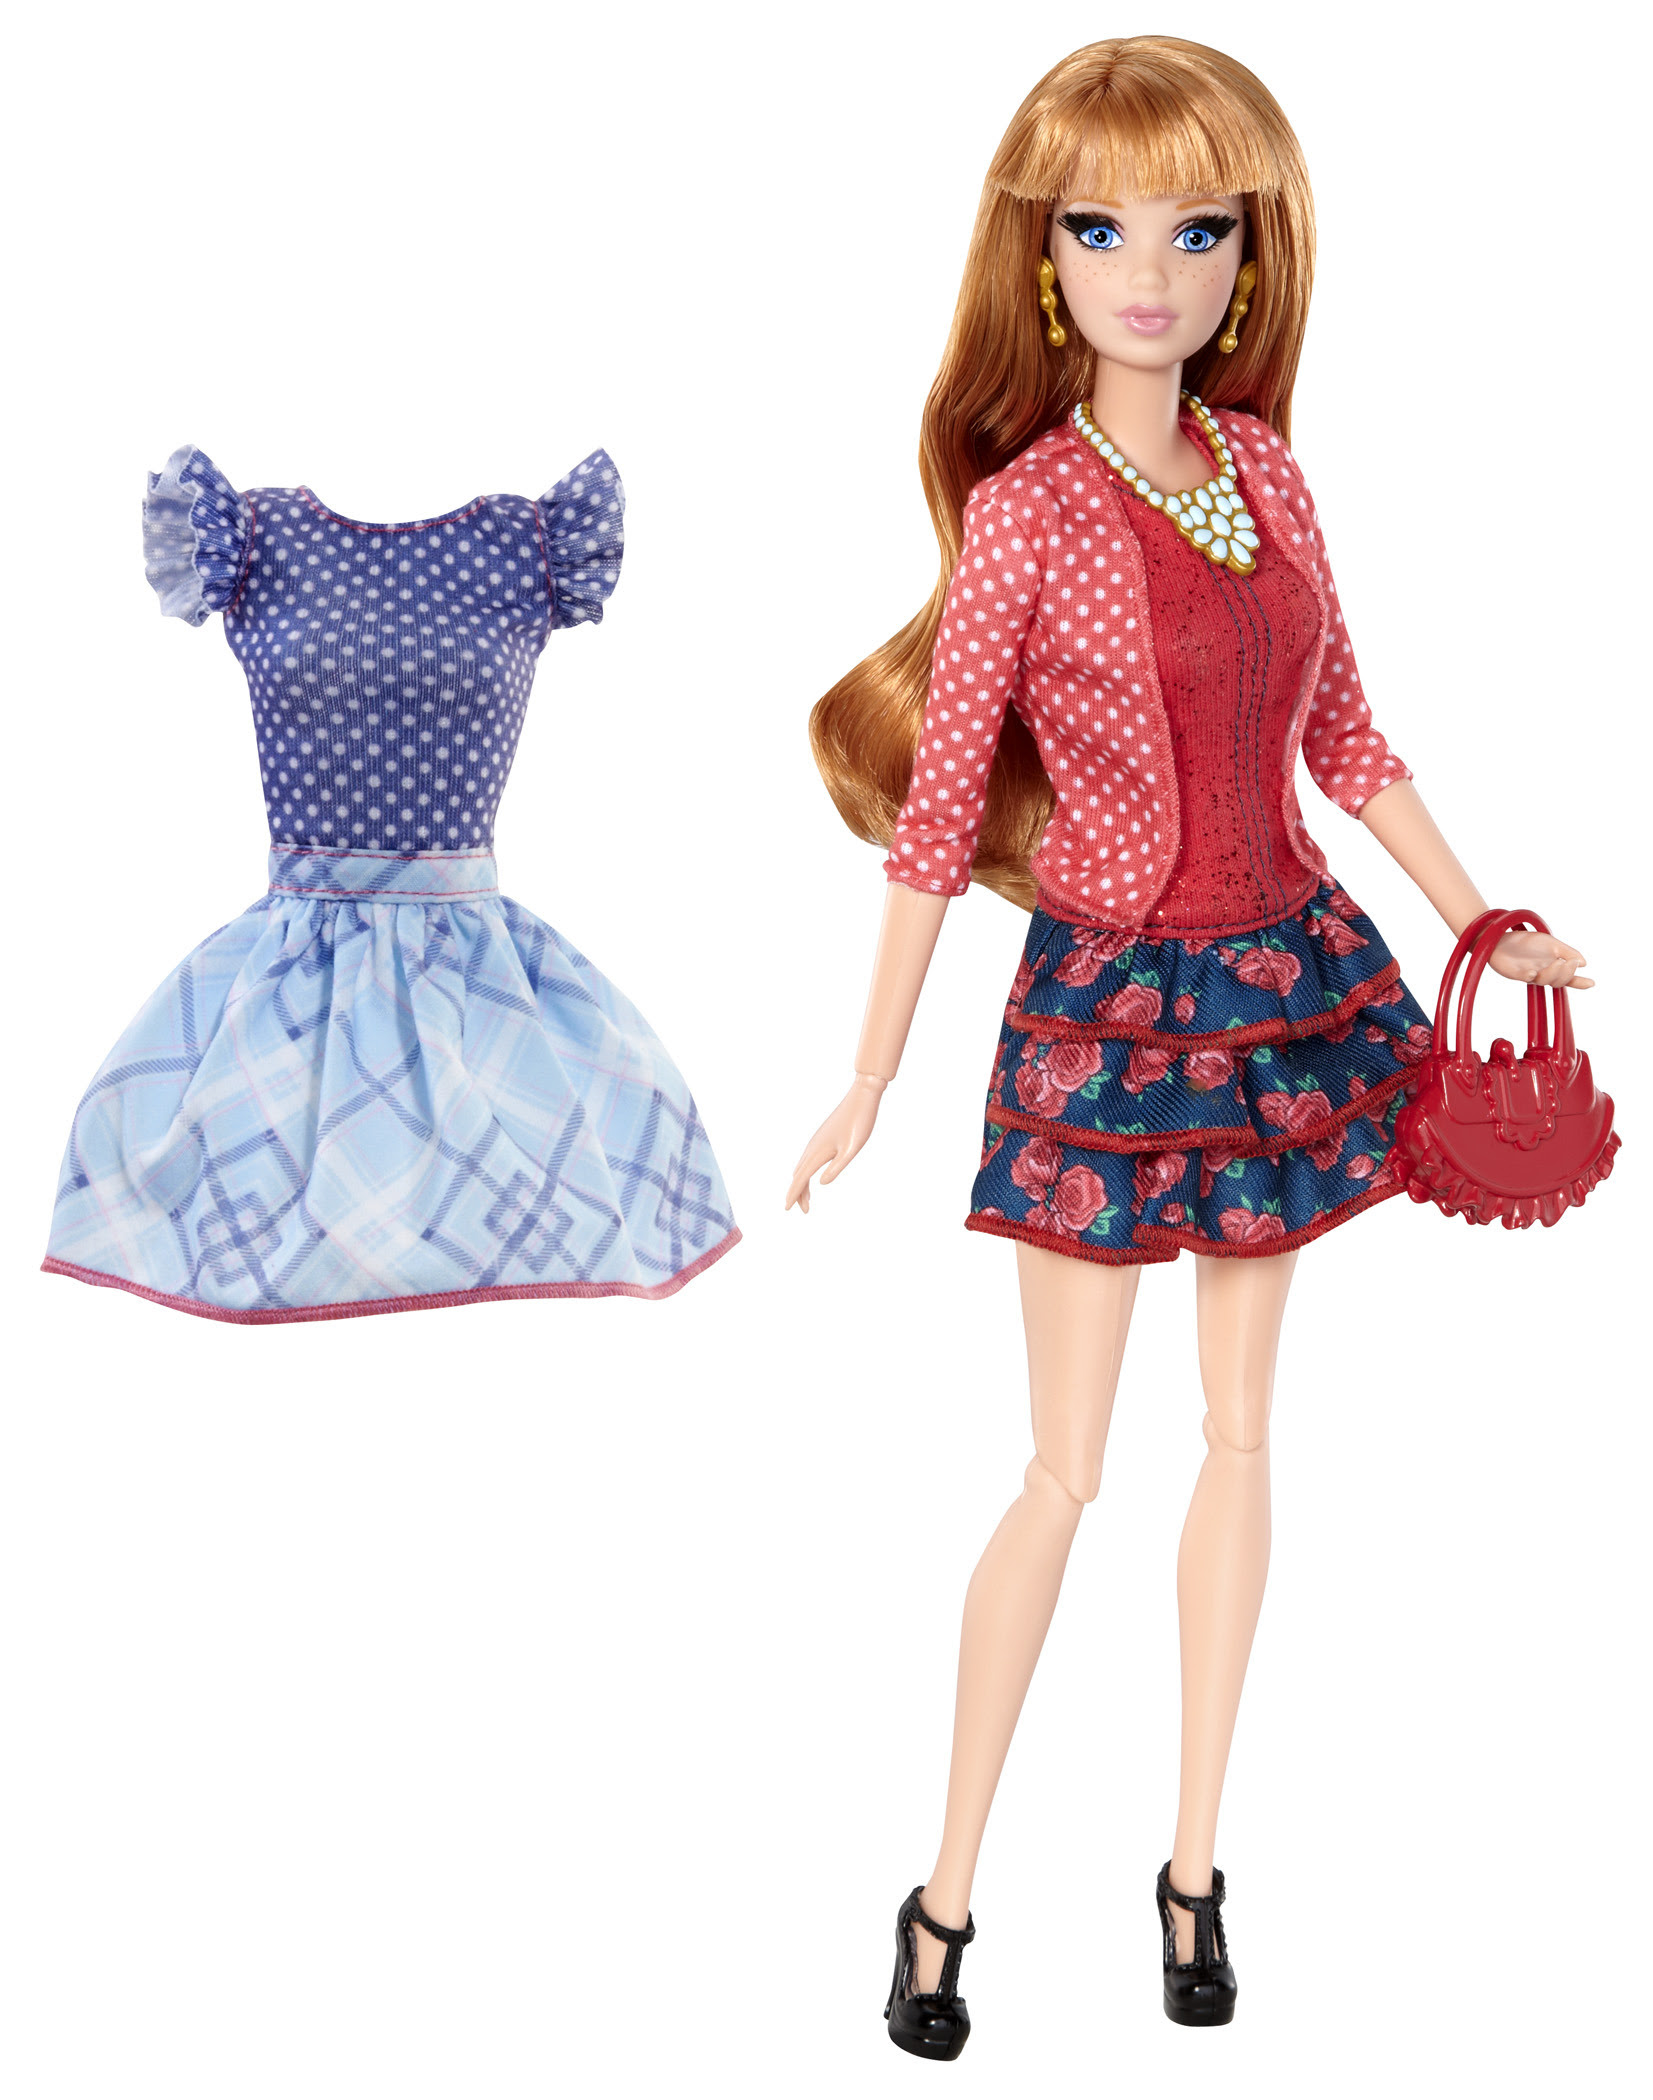 http://dollyconfessions.wordpress.com/2013/04/29/barbie-2013-what-im-looking-forward-to/